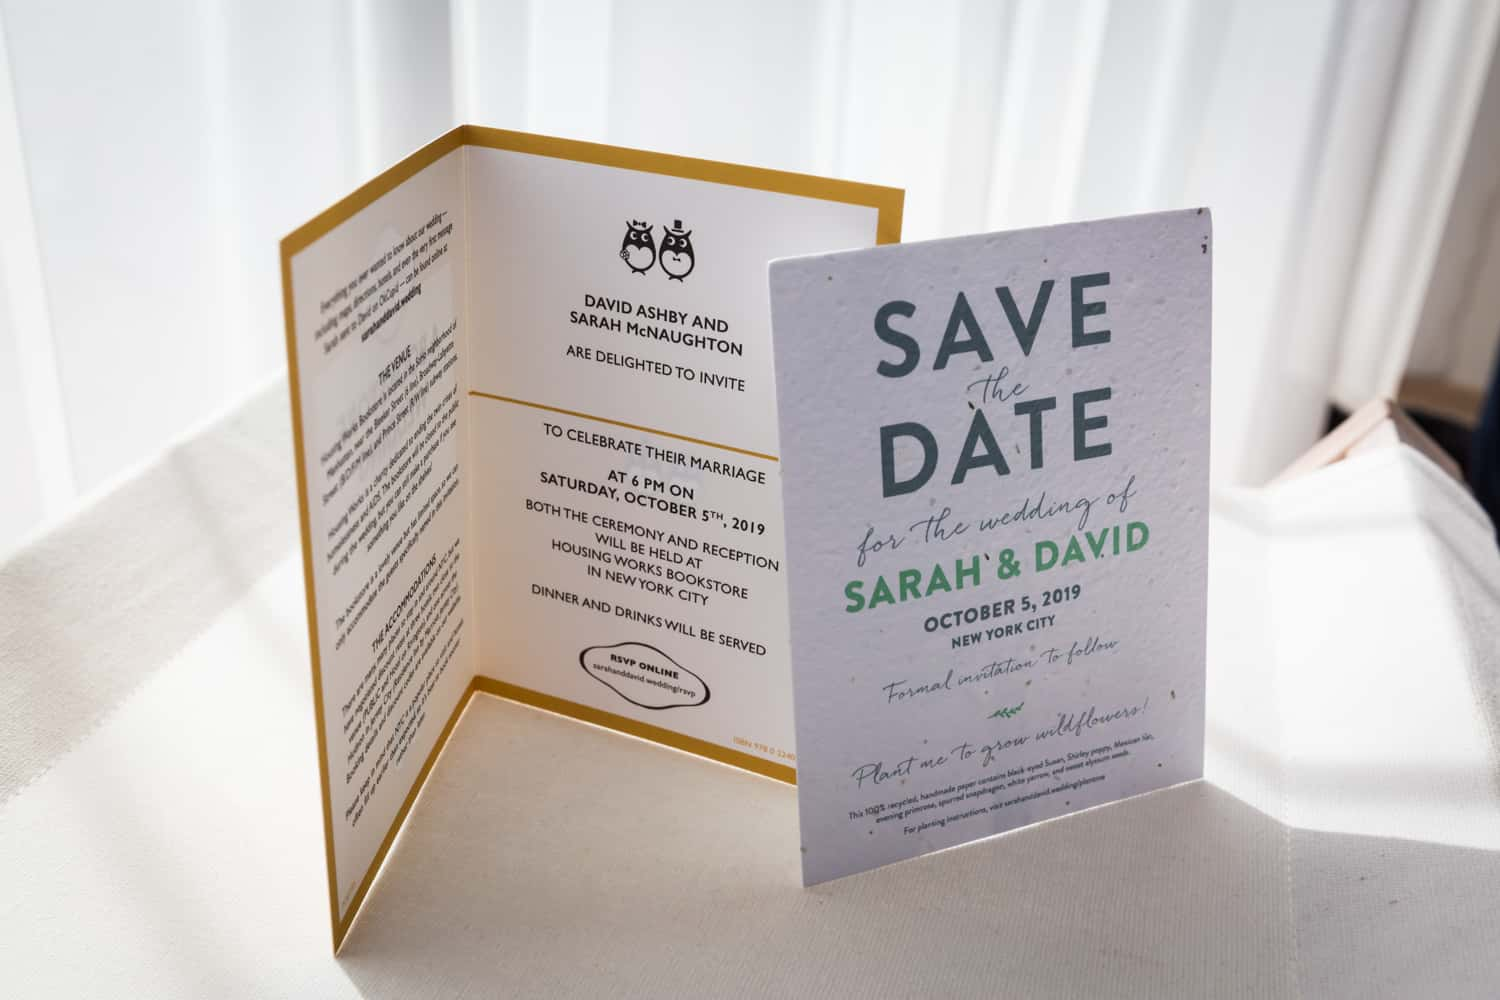 Paper wedding invitation and save the date card